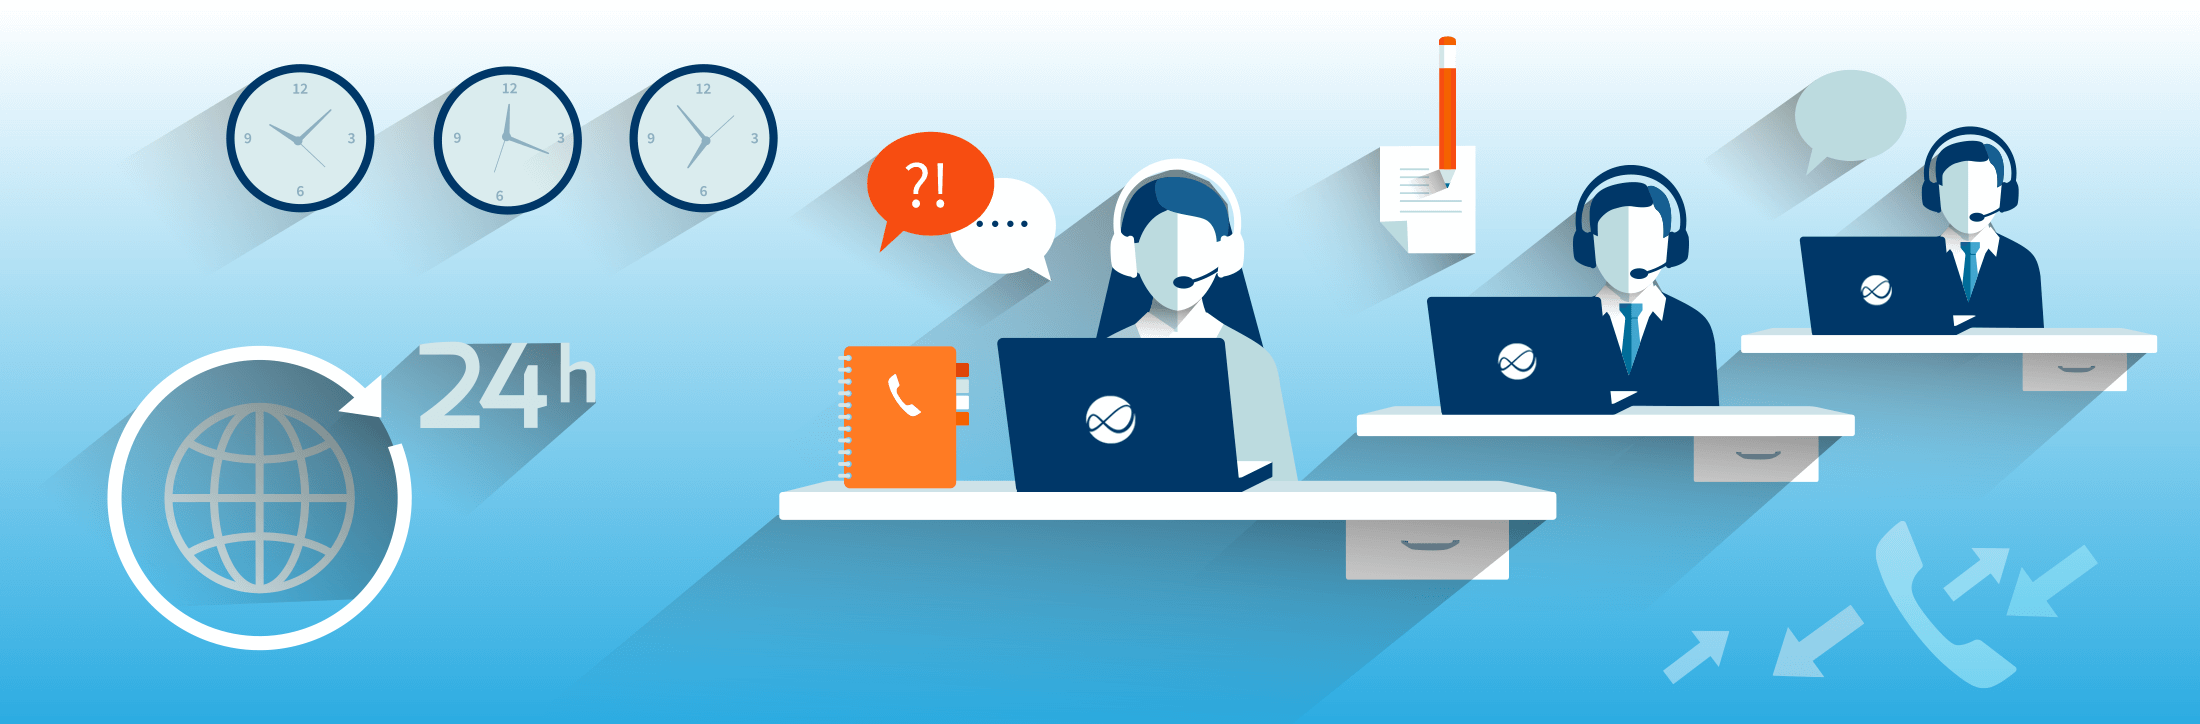 Help Desk Illustration